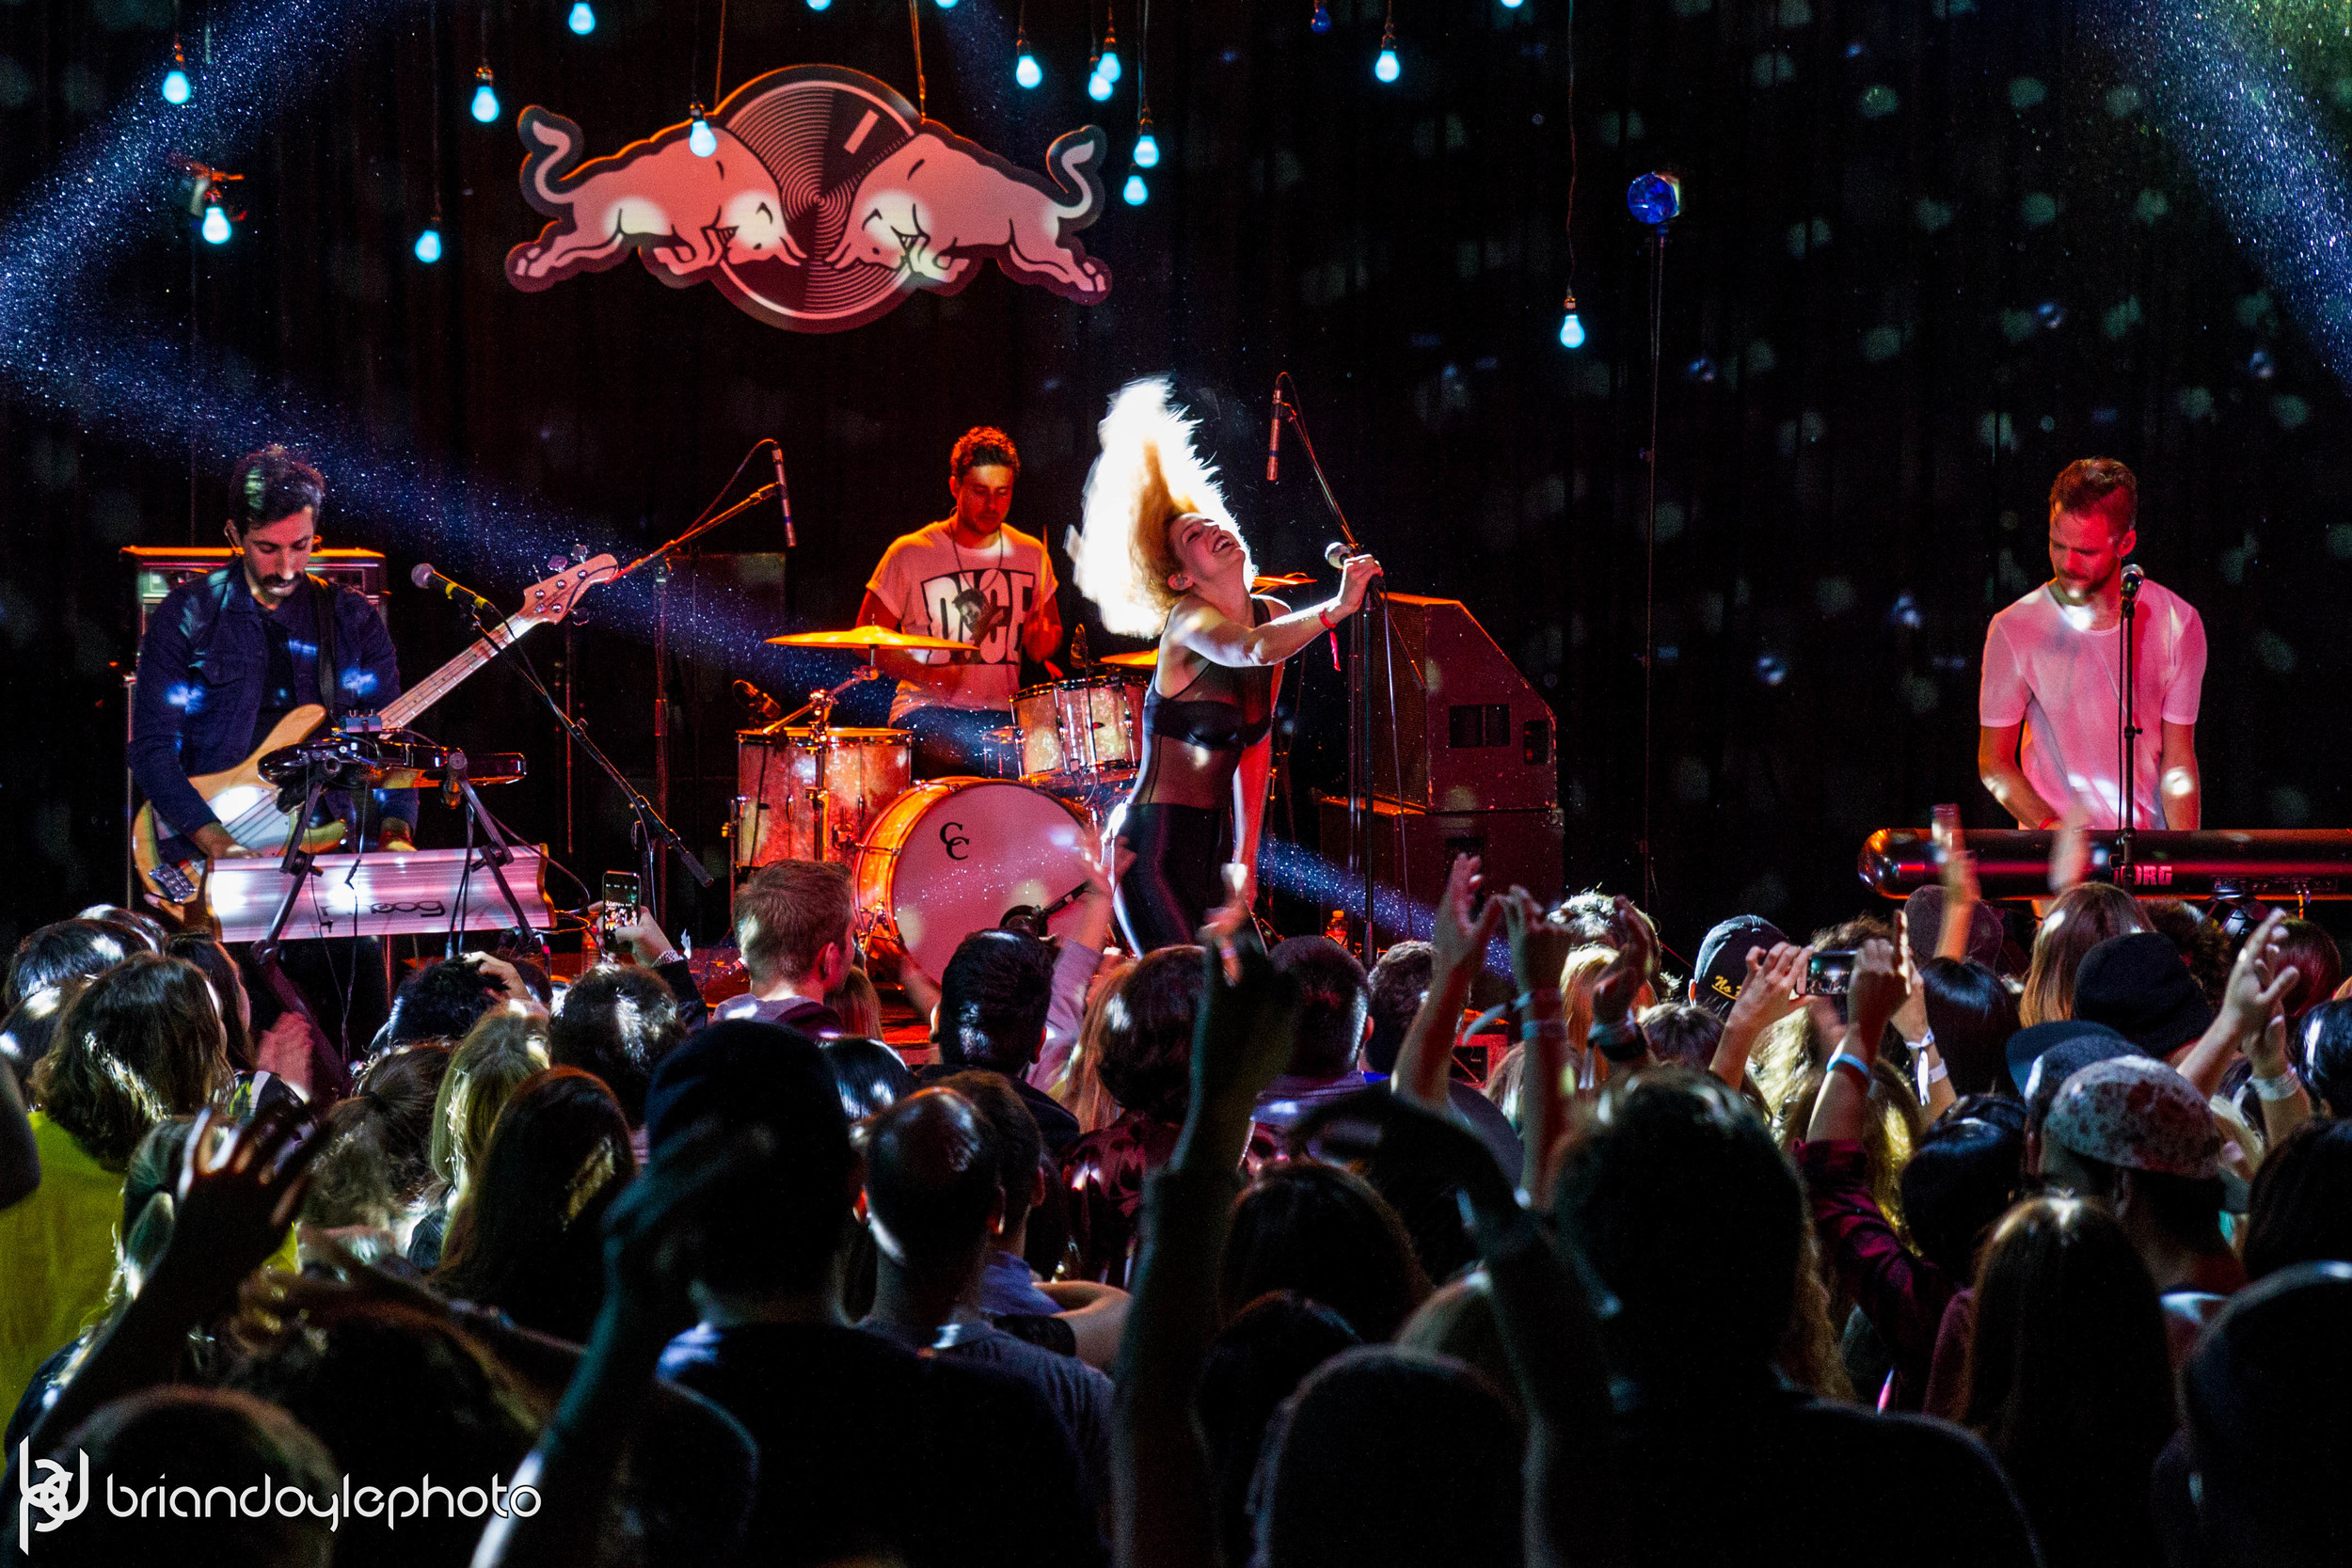 Red Bull - MS MR, Feathers, Electric Sons @ The Roxy 2014.11.02 -67.jpg